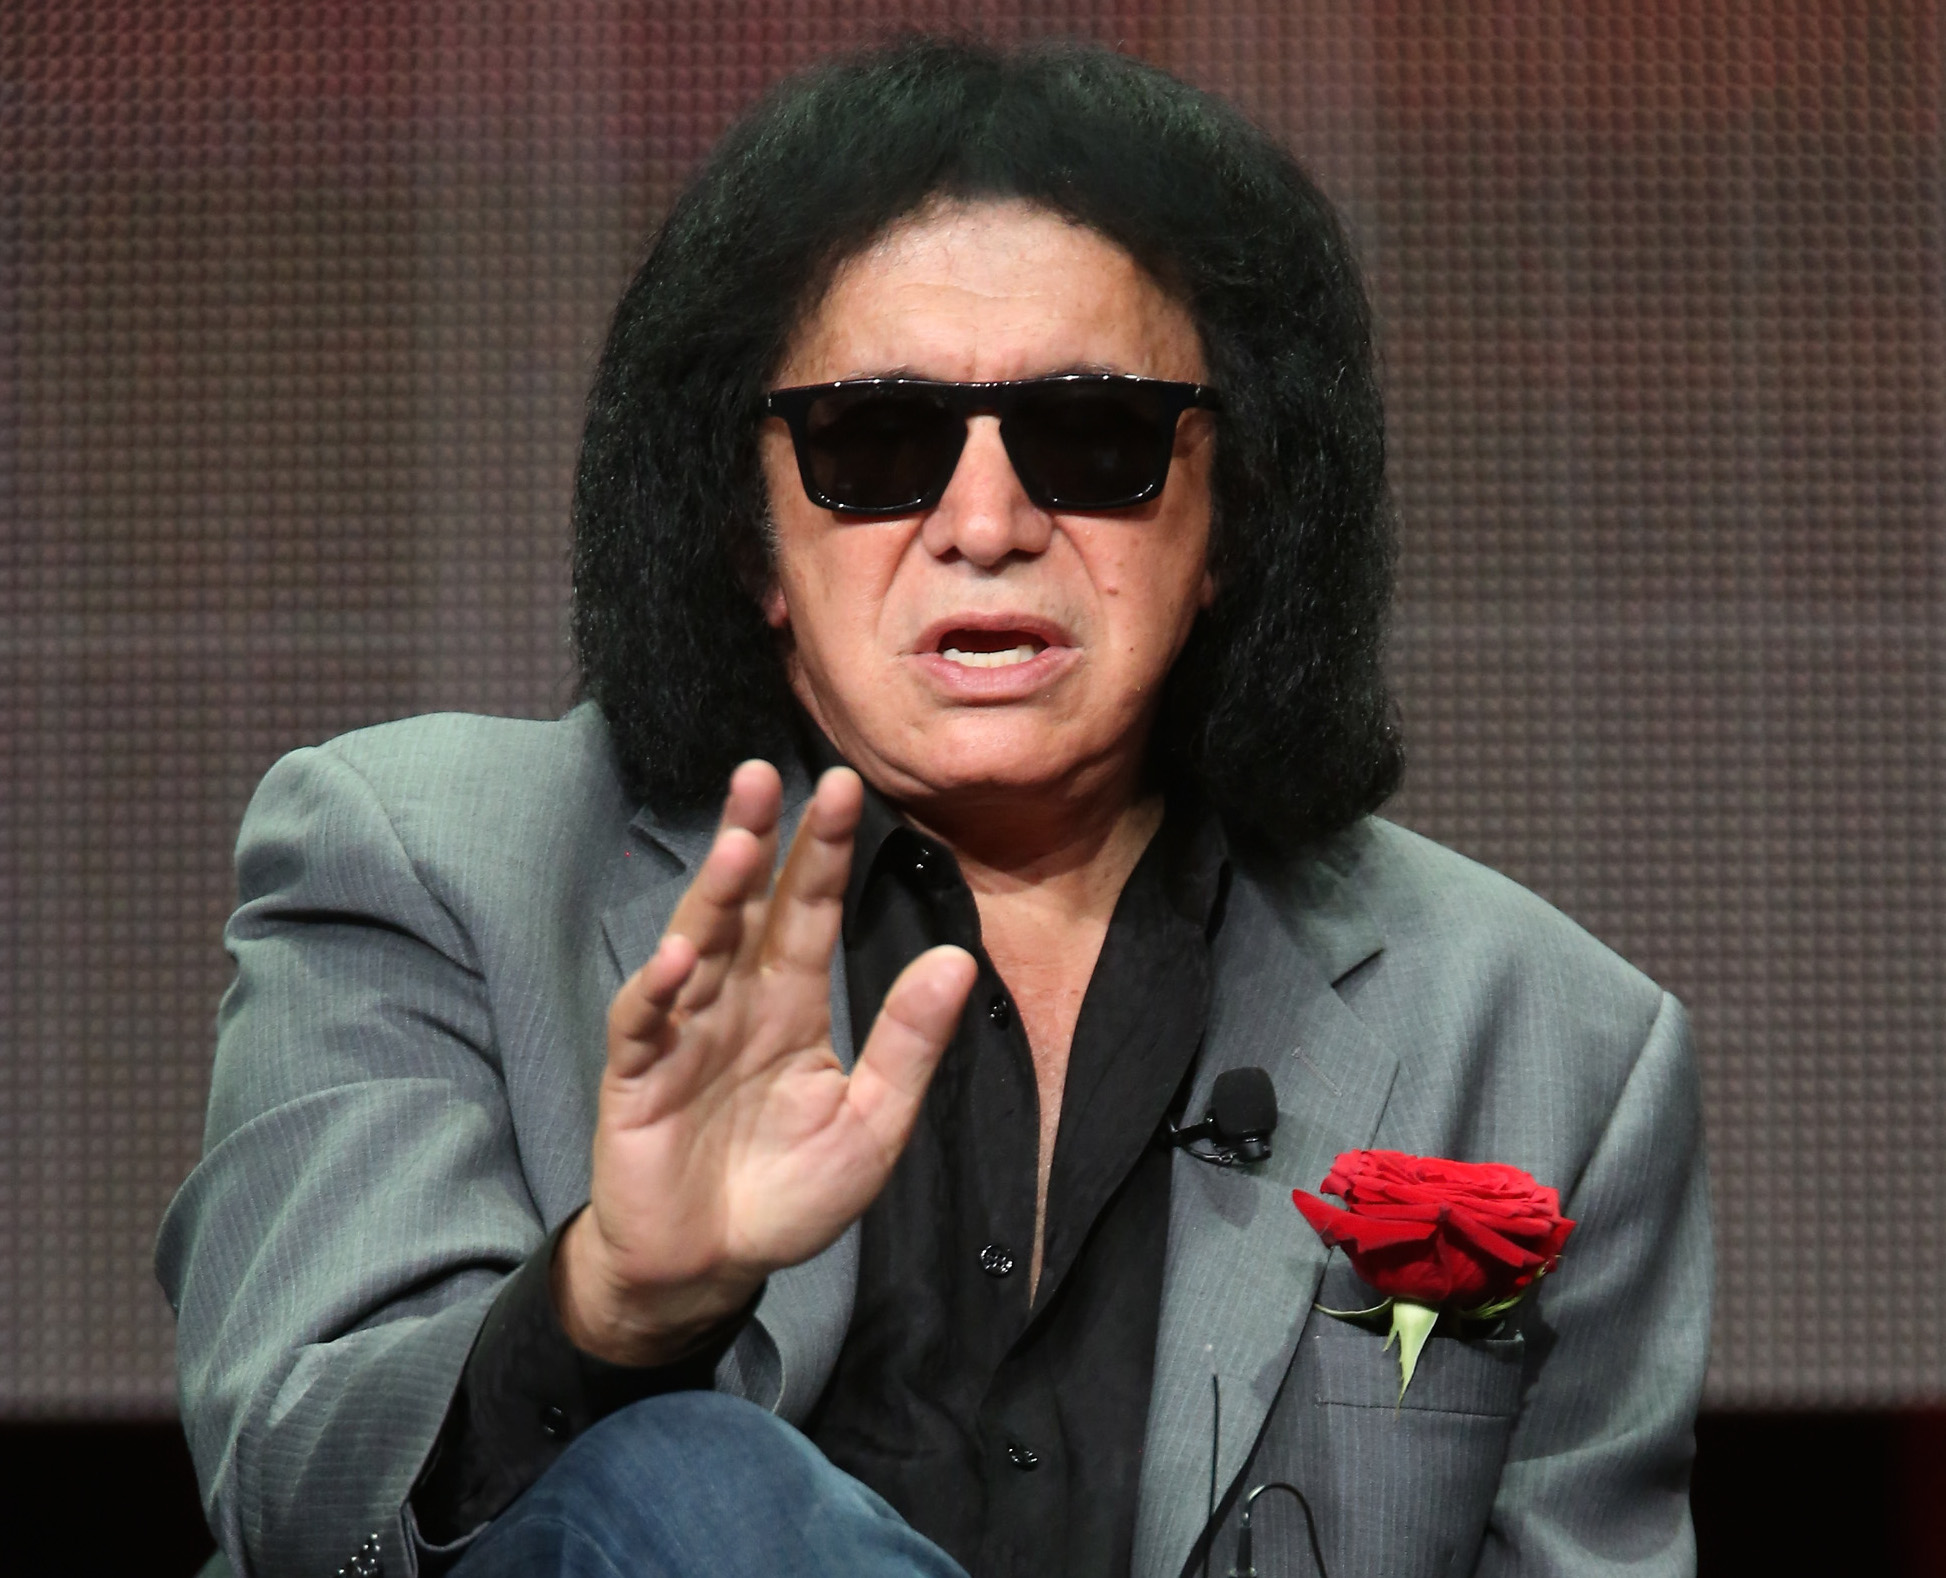 Gene Simmons leaves internet divided after putting ice in cereal